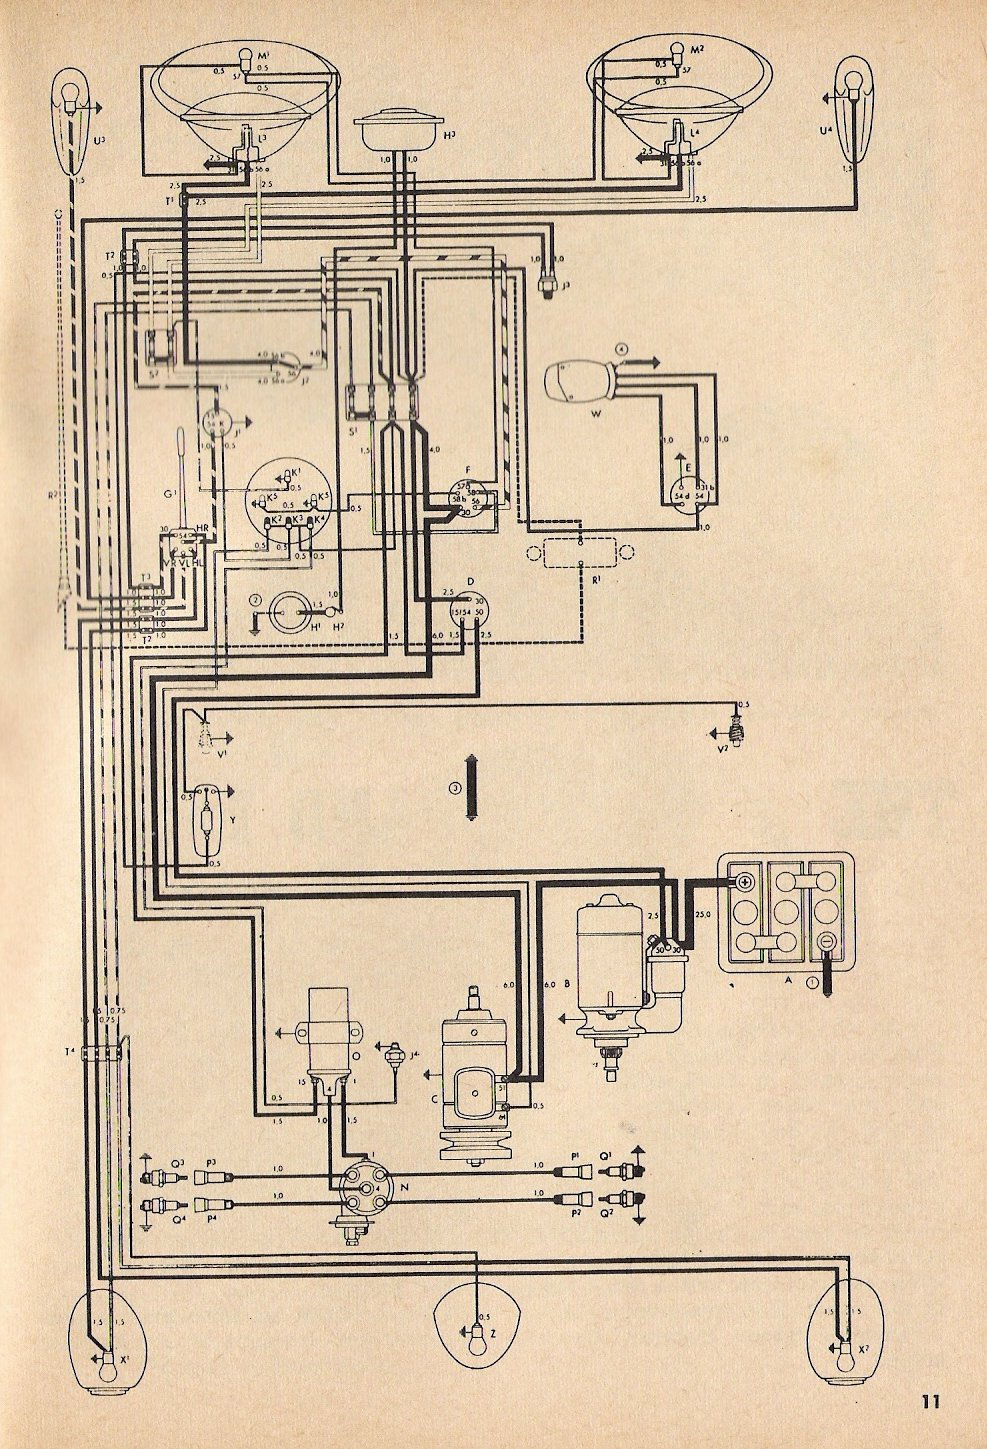 bug_toaug57 thesamba com type 1 wiring diagrams 1960 vw bus wiring diagram at fashall.co